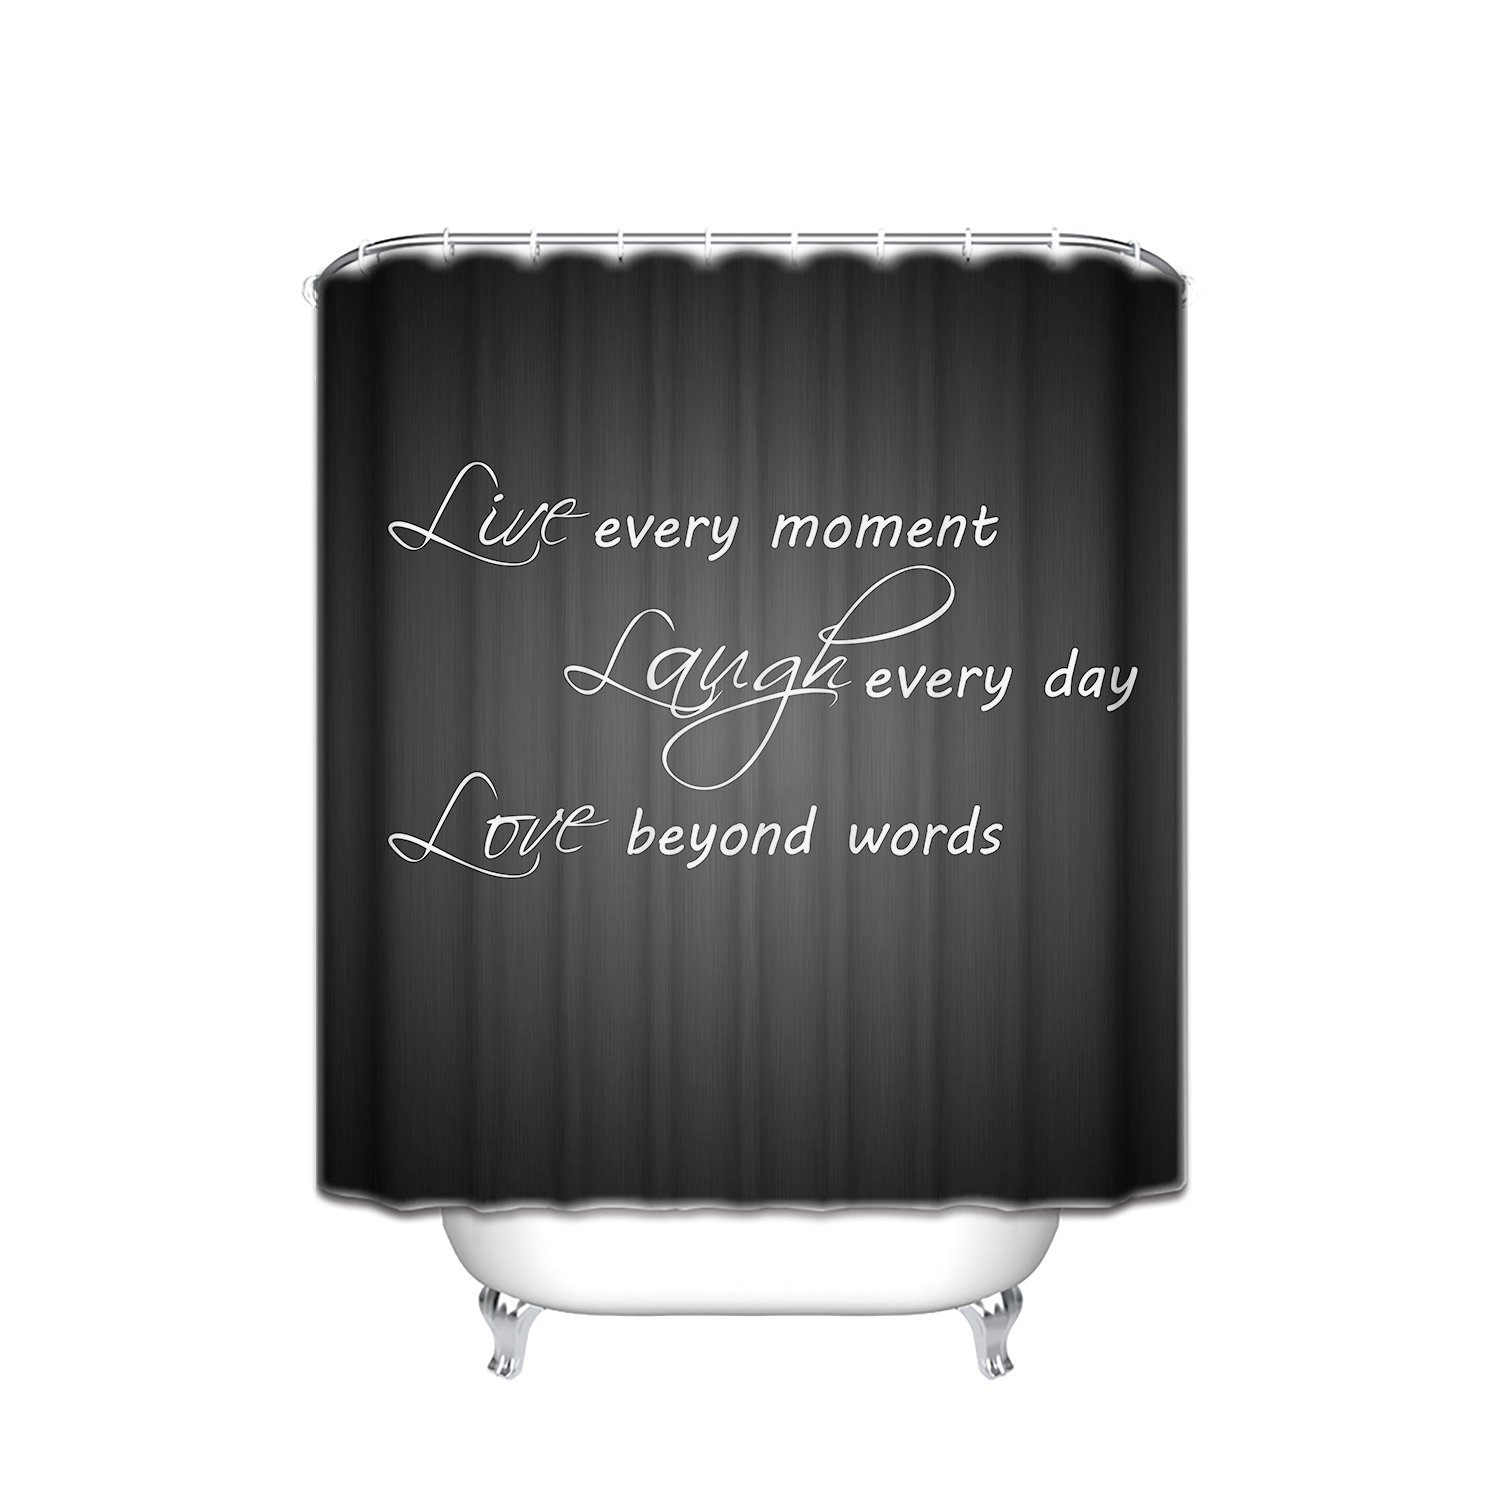 Prime Leader Inspirational Motto Laugh Every Day Black Background Waterproof Fabric Shower Curtain,72''(w) x 84''(h) Extra Long Bath Decorations Sets with Hooks by Prime Leader